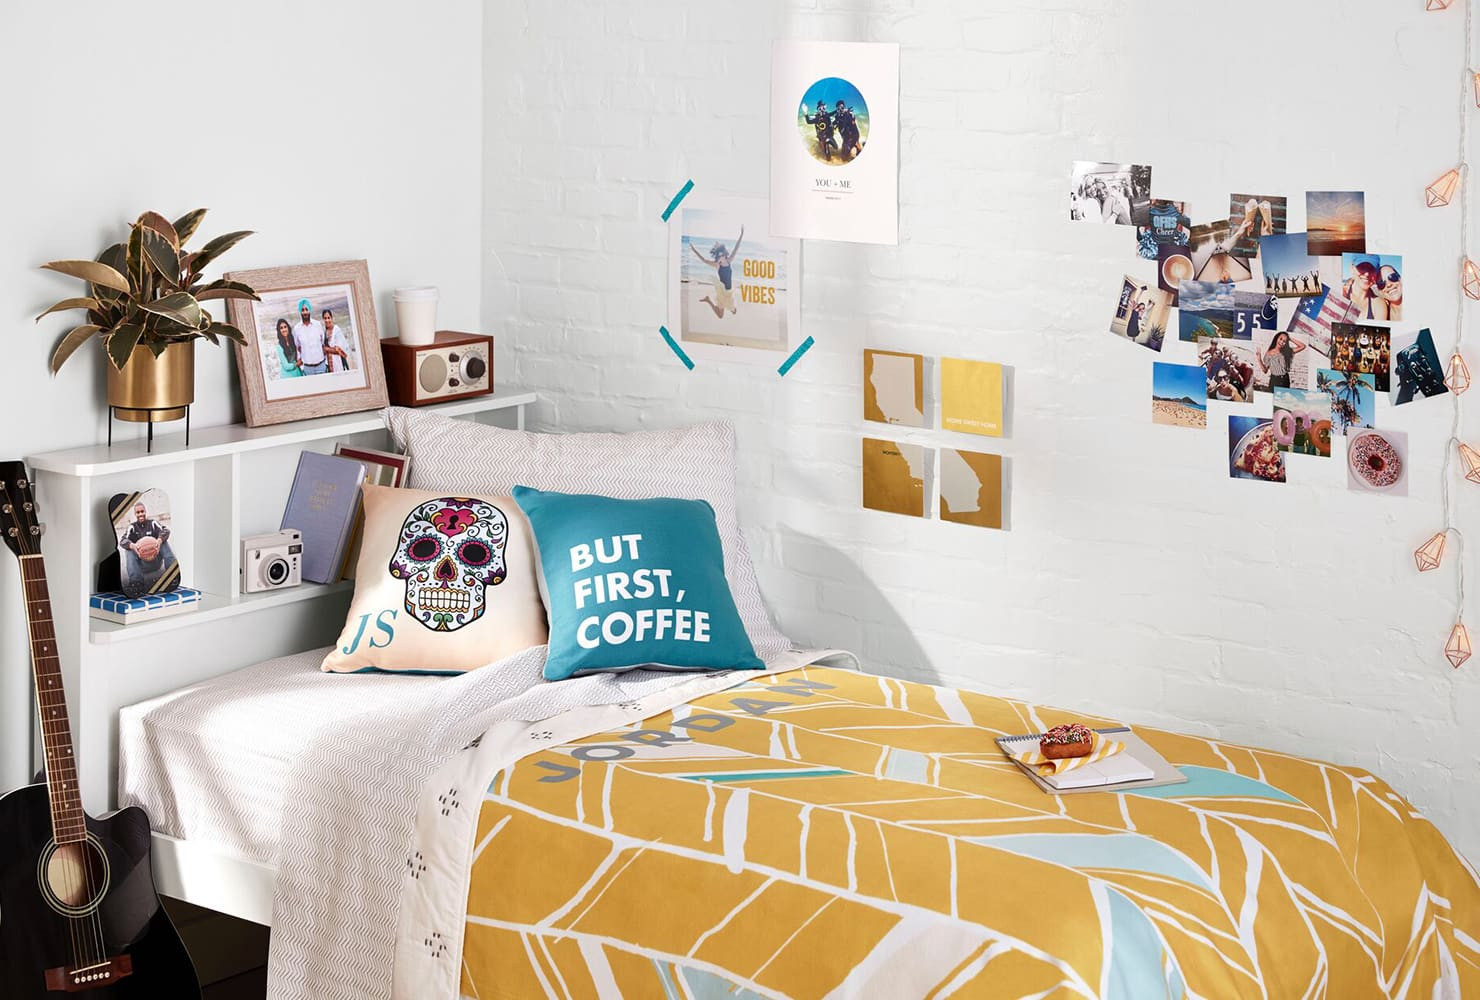 Best ideas about DIY Dorm Decor . Save or Pin 37 Creative DIY Dorm Decor Ideas to Liven Up Your Space Now.